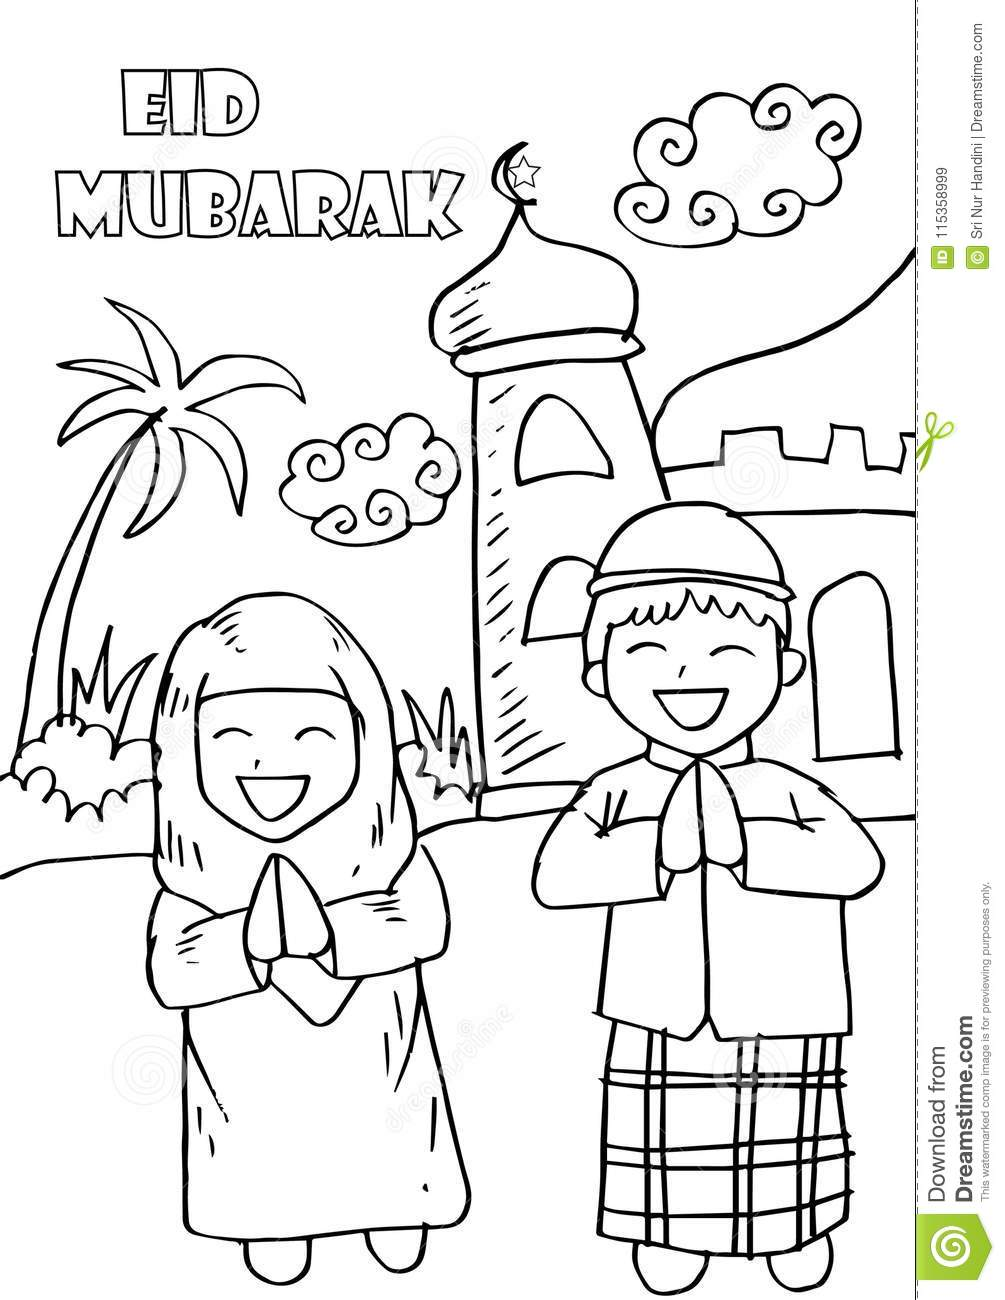 Eid Mubarak With Happy Kids Stock Vector Illustration Of Background Message 115358999